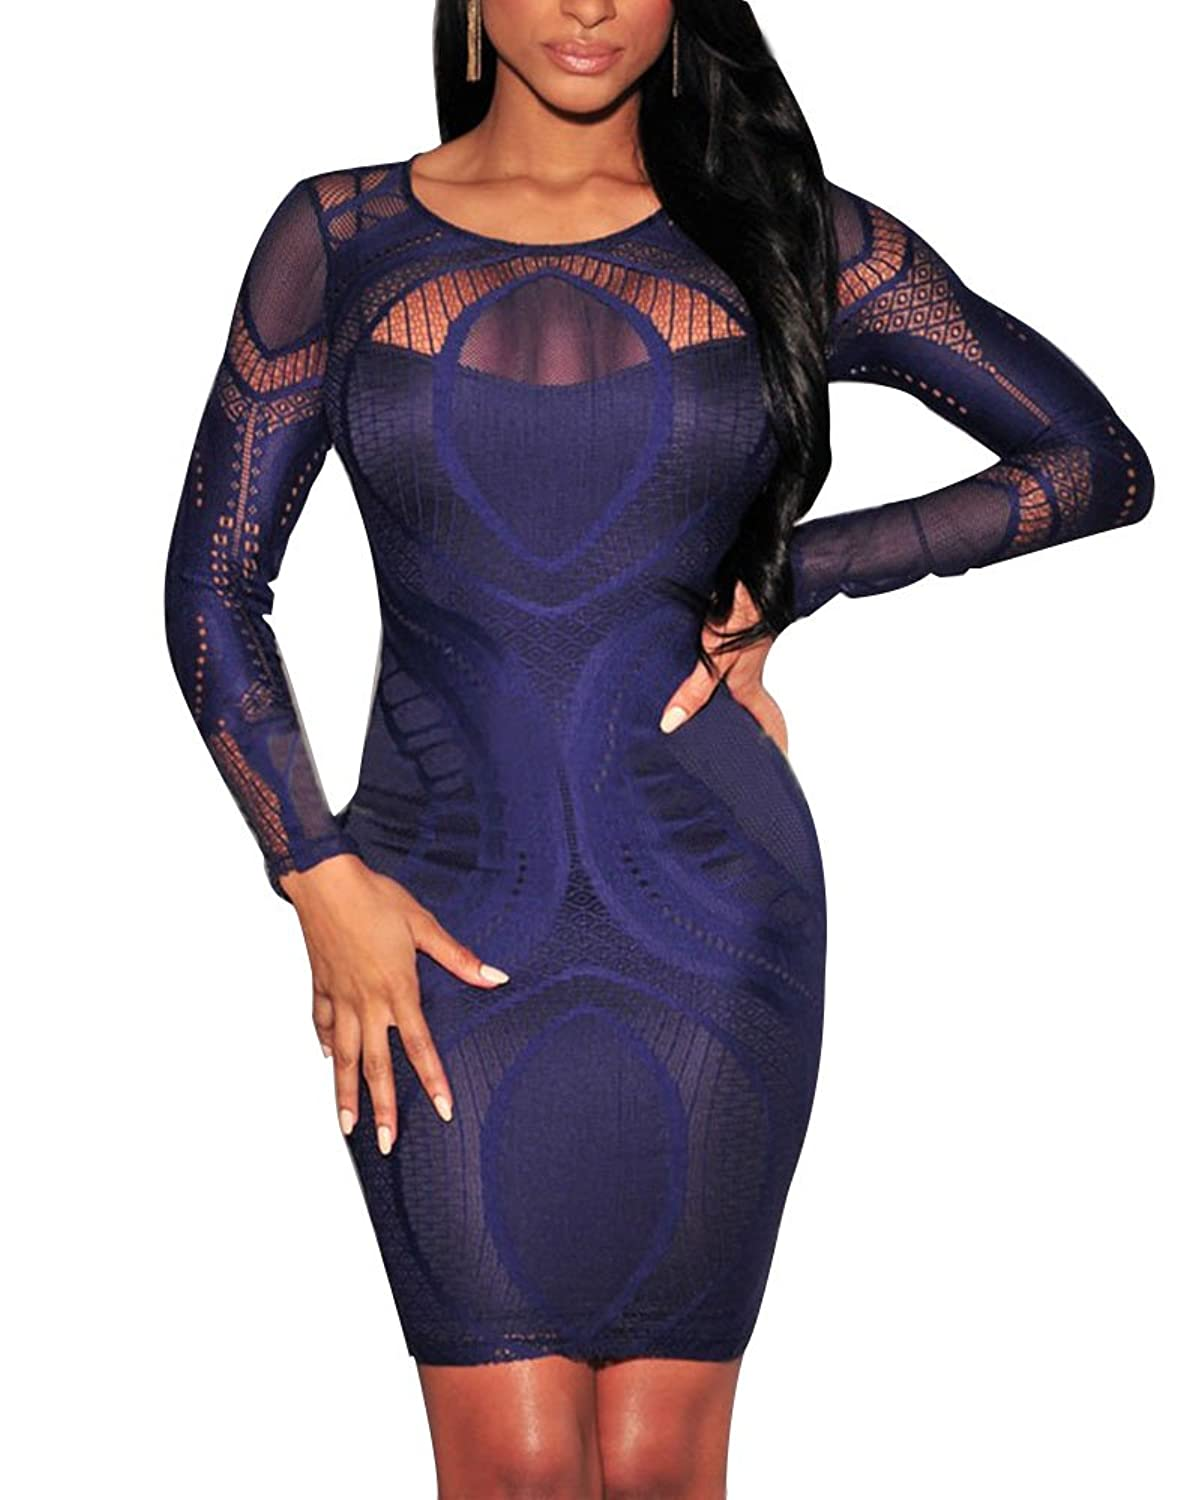 Cfanny Women's Lace Nude Illusion See Through Sleeves Bodycon Dress